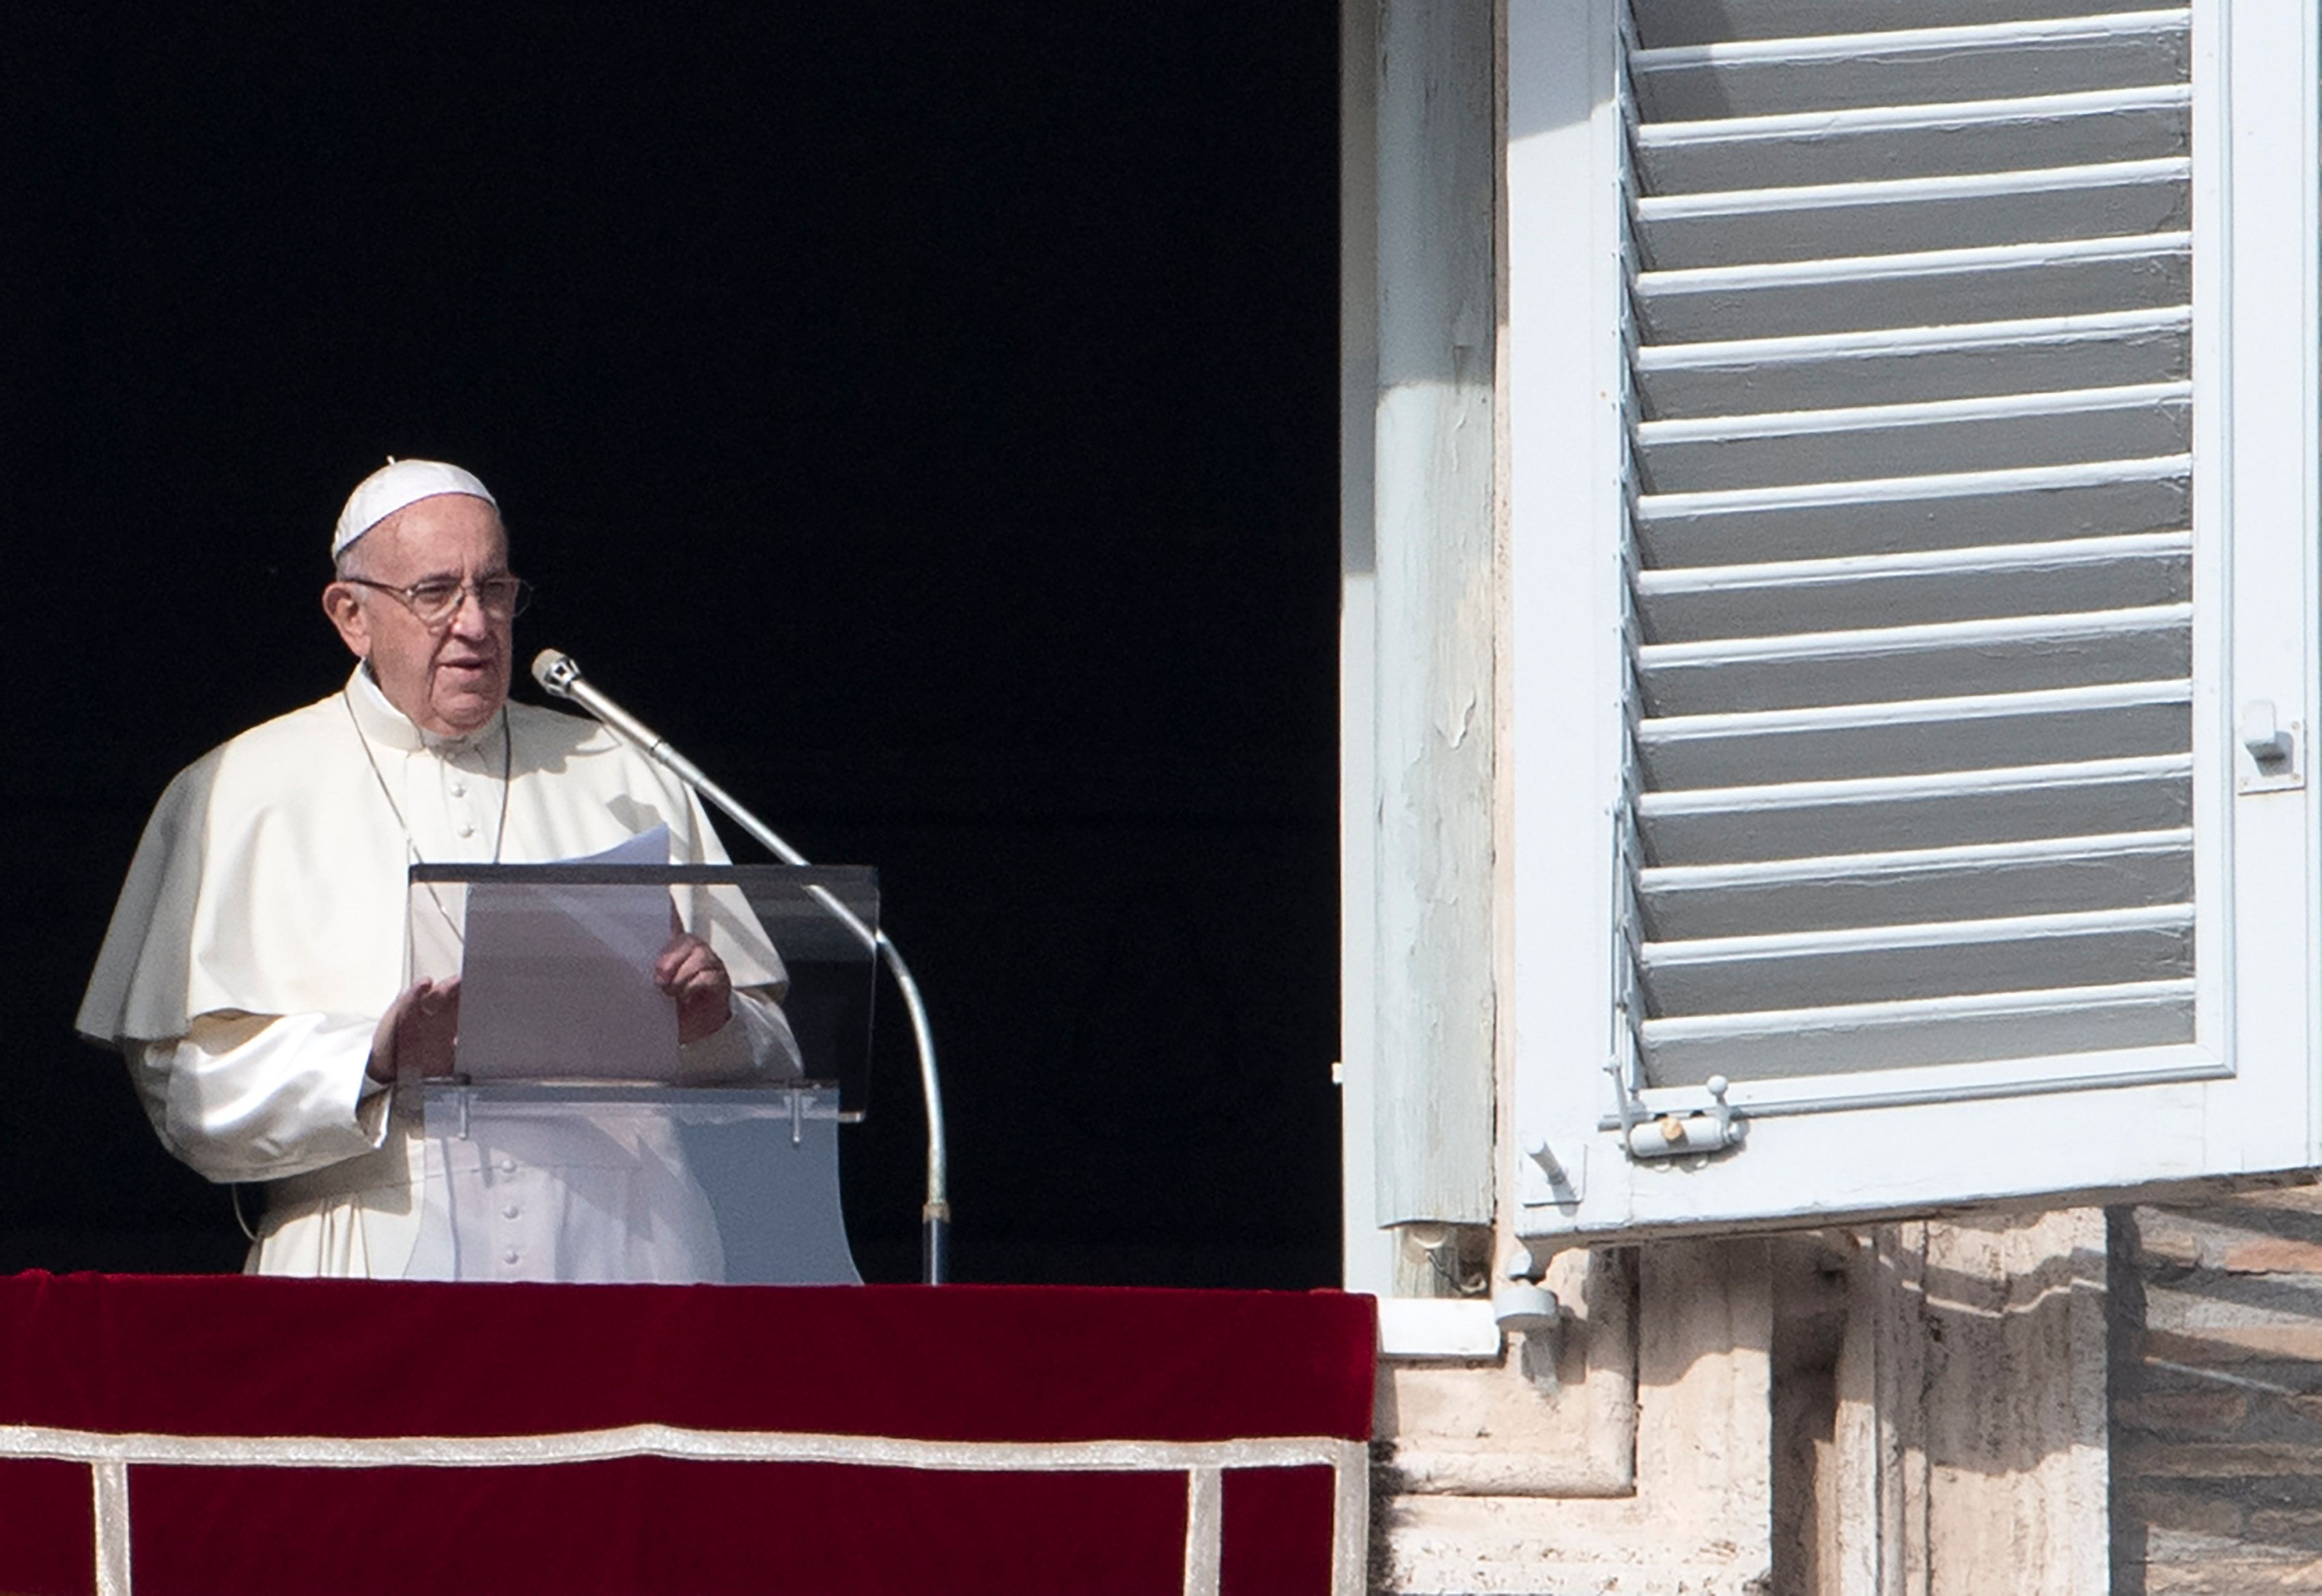 Pope Francis addresses the crowd from the window of the apostolic palace overlooking Saint Peter's square during his Su